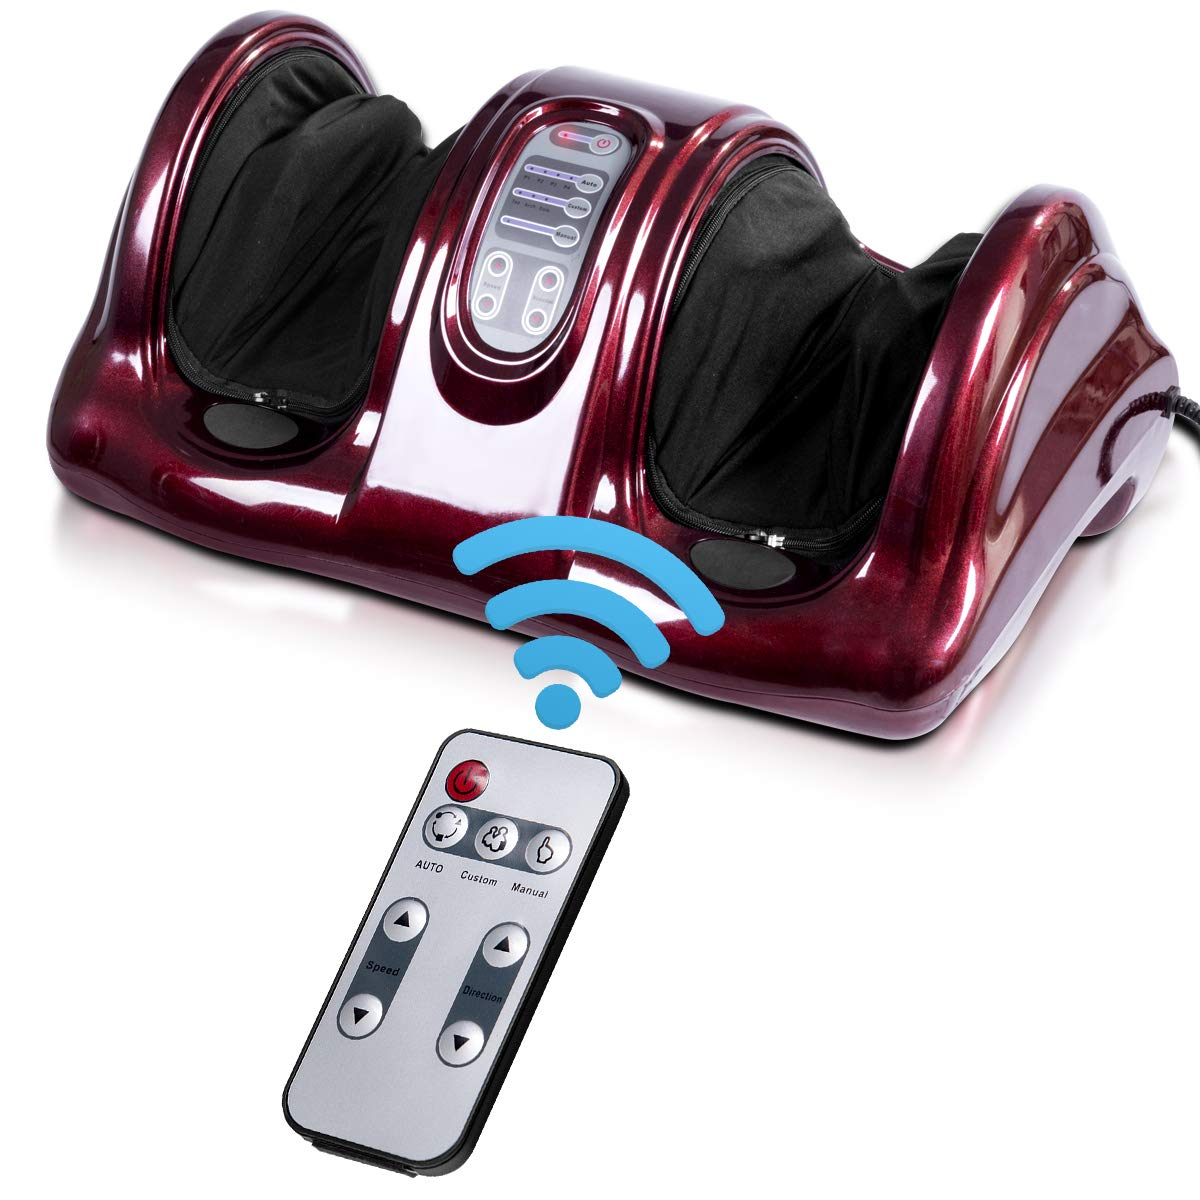 Giantex Foot Massager Machine Massage for Feet, Chronic Nerve Pain Therapy Spa Gift Deep Kneading Rolling Massage for Leg Calf Ankle, Electric Shiatsu Foot Massager w Remote, Burgundy